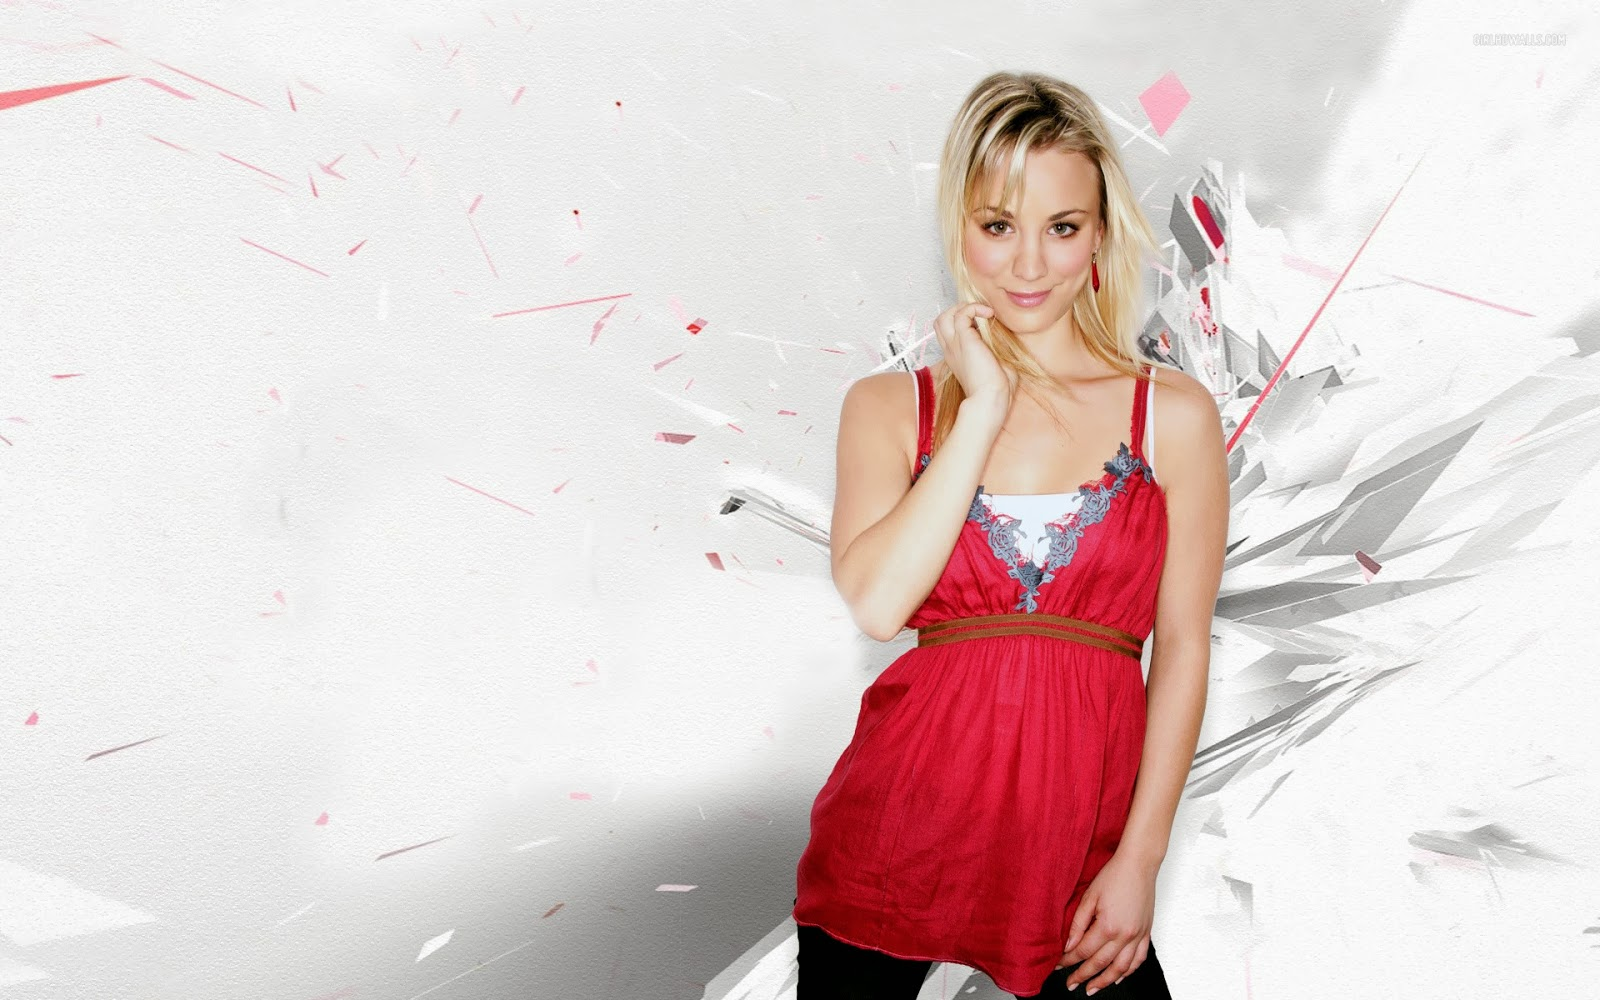 kaley cuoco 720p background wallpapers hd wallpapers